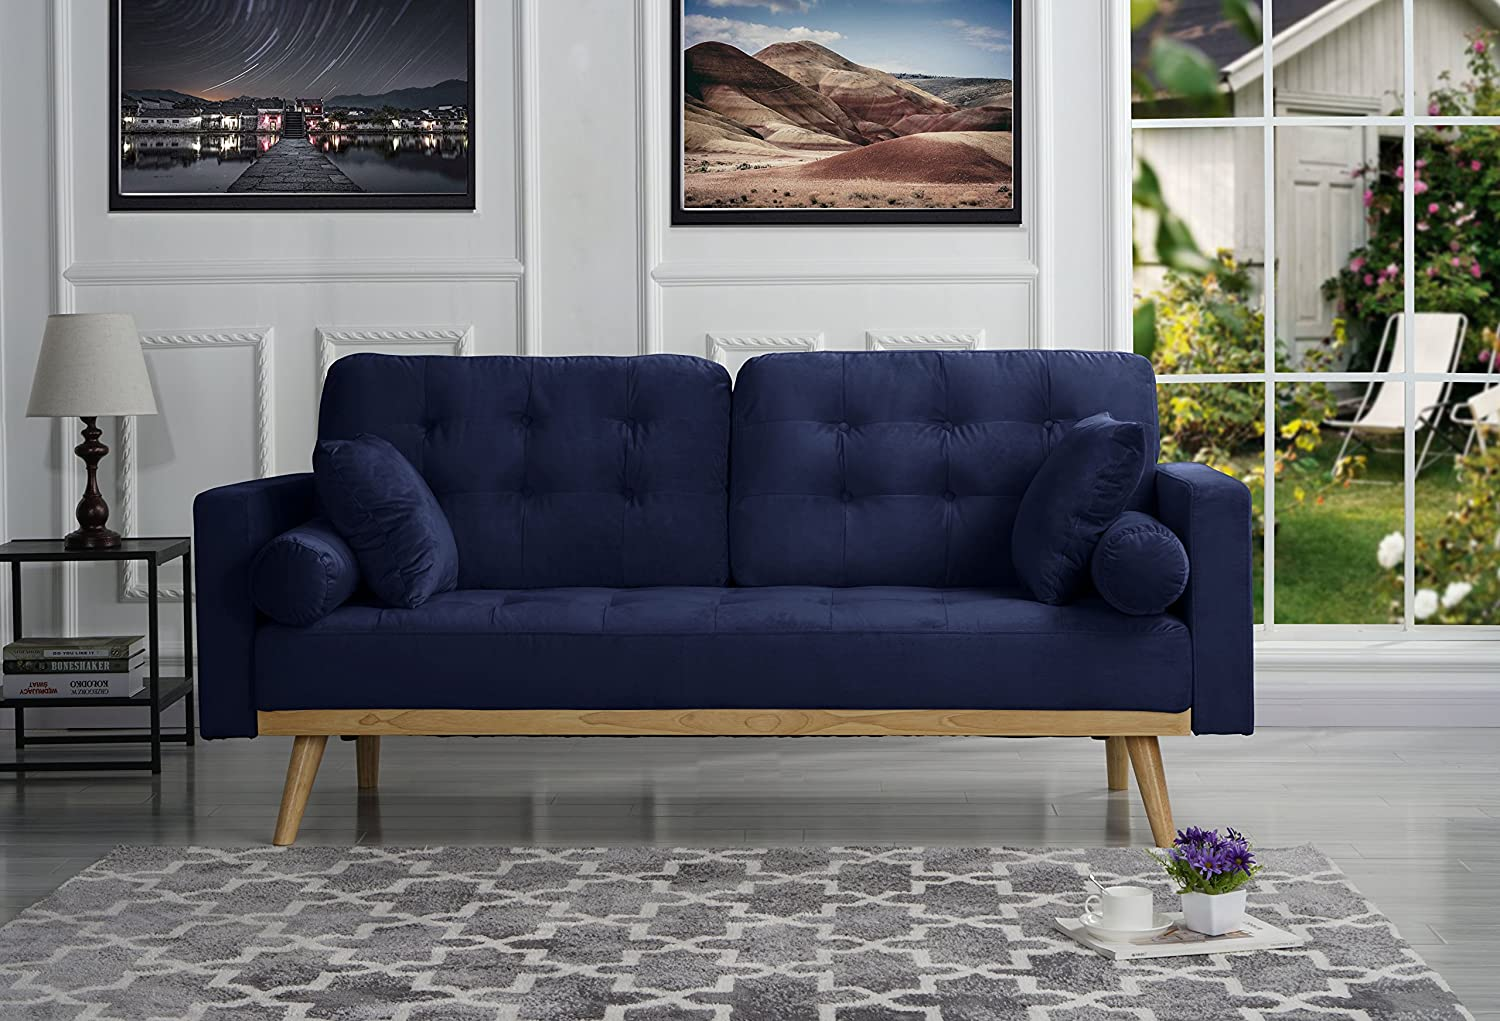 Amazing Mid Century Modern Tufted Velvet Fabric Sofa Navy Home Interior And Landscaping Dextoversignezvosmurscom